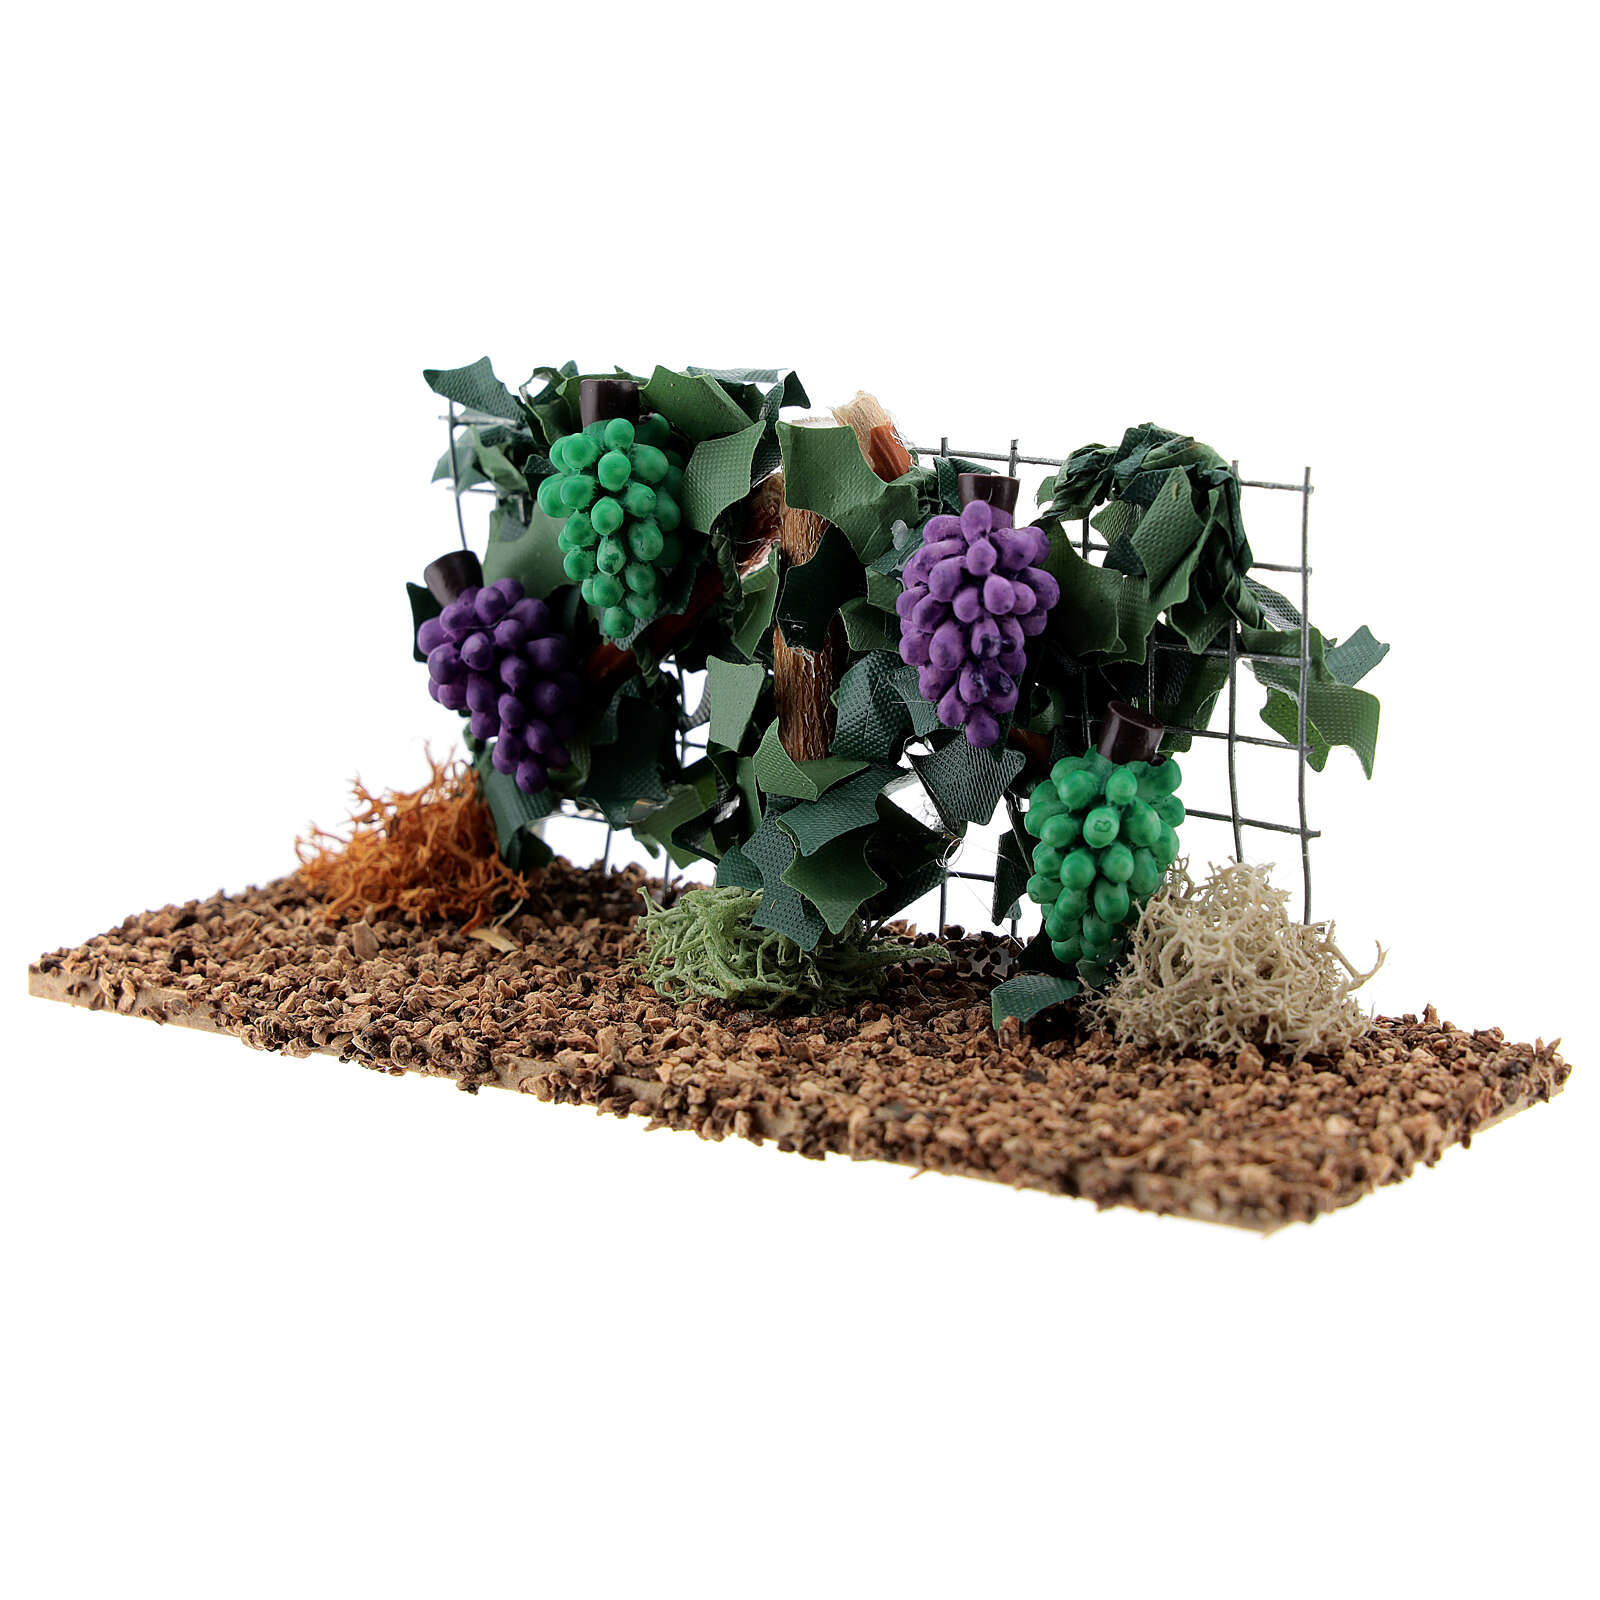 Vine with grapes for Nativity Scene with 6-8 cm figurines 4